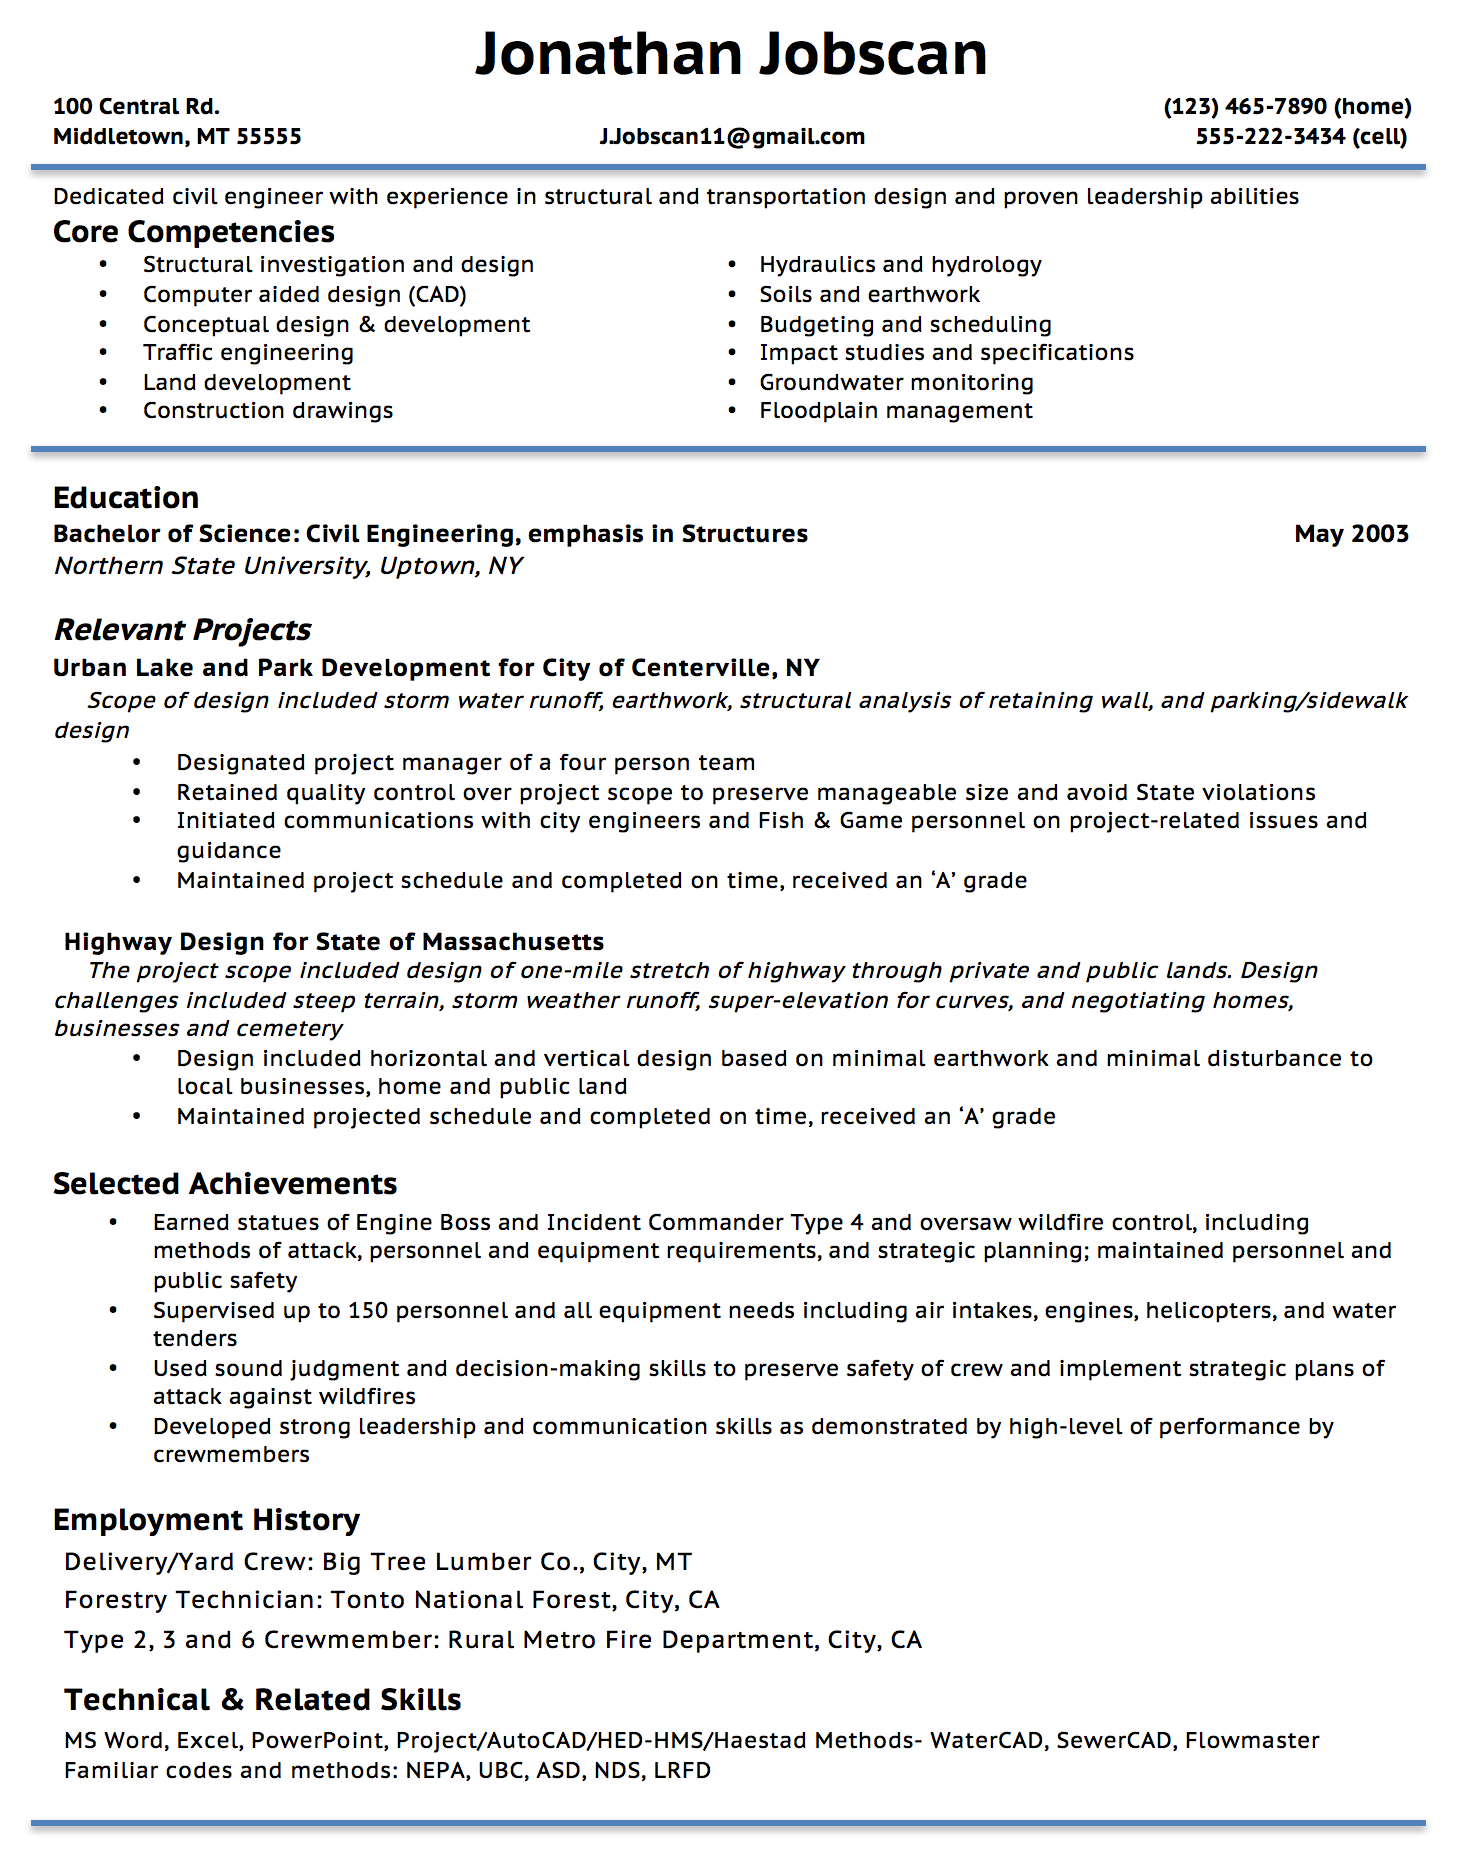 Opposenewapstandardsus  Gorgeous Resume Writing Guide  Jobscan With Extraordinary Example Of A Functional Resume Format With Awesome Research Experience Resume Also Call Center Job Description Resume In Addition Training Specialist Resume And Inventory Specialist Resume As Well As What Looks Good On A Resume Additionally Resume For Social Worker From Jobscanco With Opposenewapstandardsus  Extraordinary Resume Writing Guide  Jobscan With Awesome Example Of A Functional Resume Format And Gorgeous Research Experience Resume Also Call Center Job Description Resume In Addition Training Specialist Resume From Jobscanco